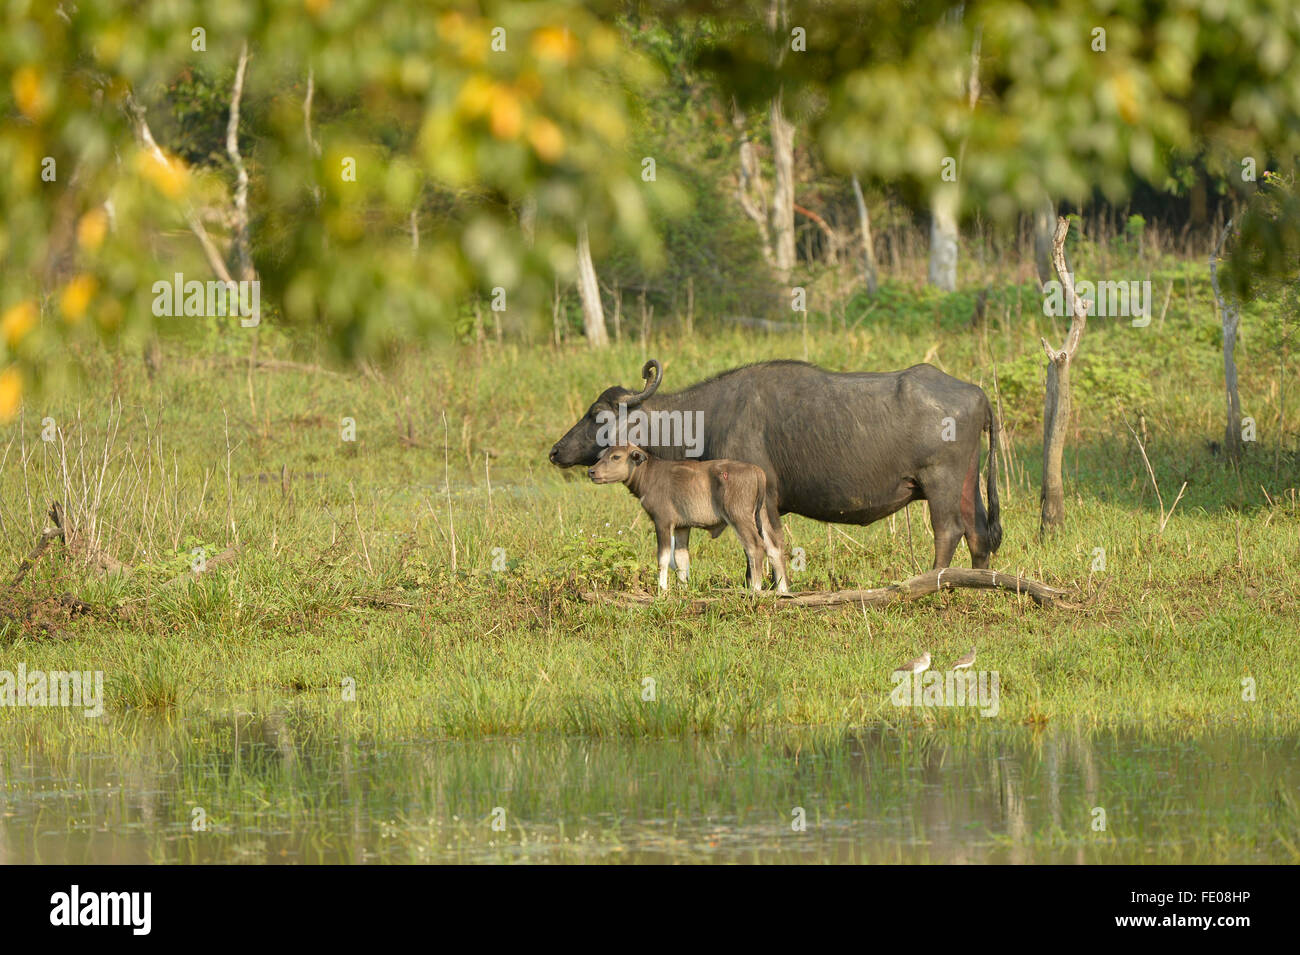 Asian Water Buffalo (Bubalus bubalis) female with young calf, Yala National Park, Sri Lanka, March - Stock Image